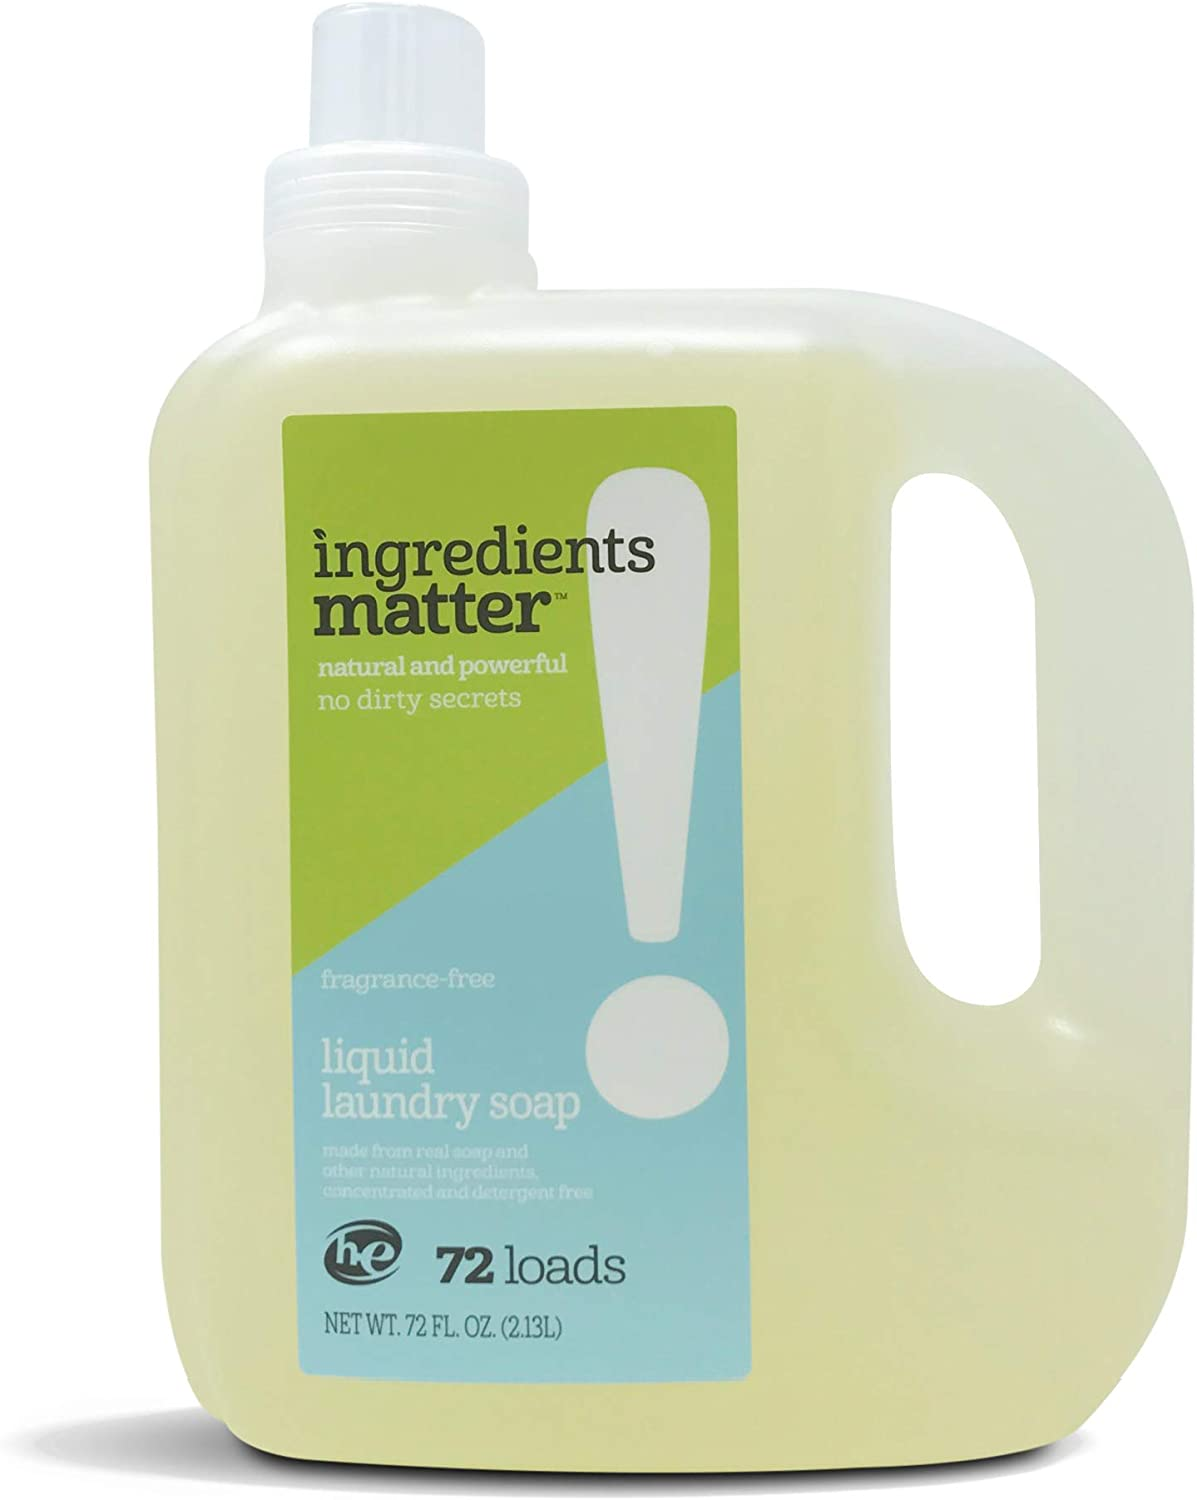 Ingredients Matter Liquid Laundry Soap - Fragrance-Free, 36 fl. oz. 72 Loads HE/Hypoallergenic, Natural, Detergent-Free, Eco-Friendly